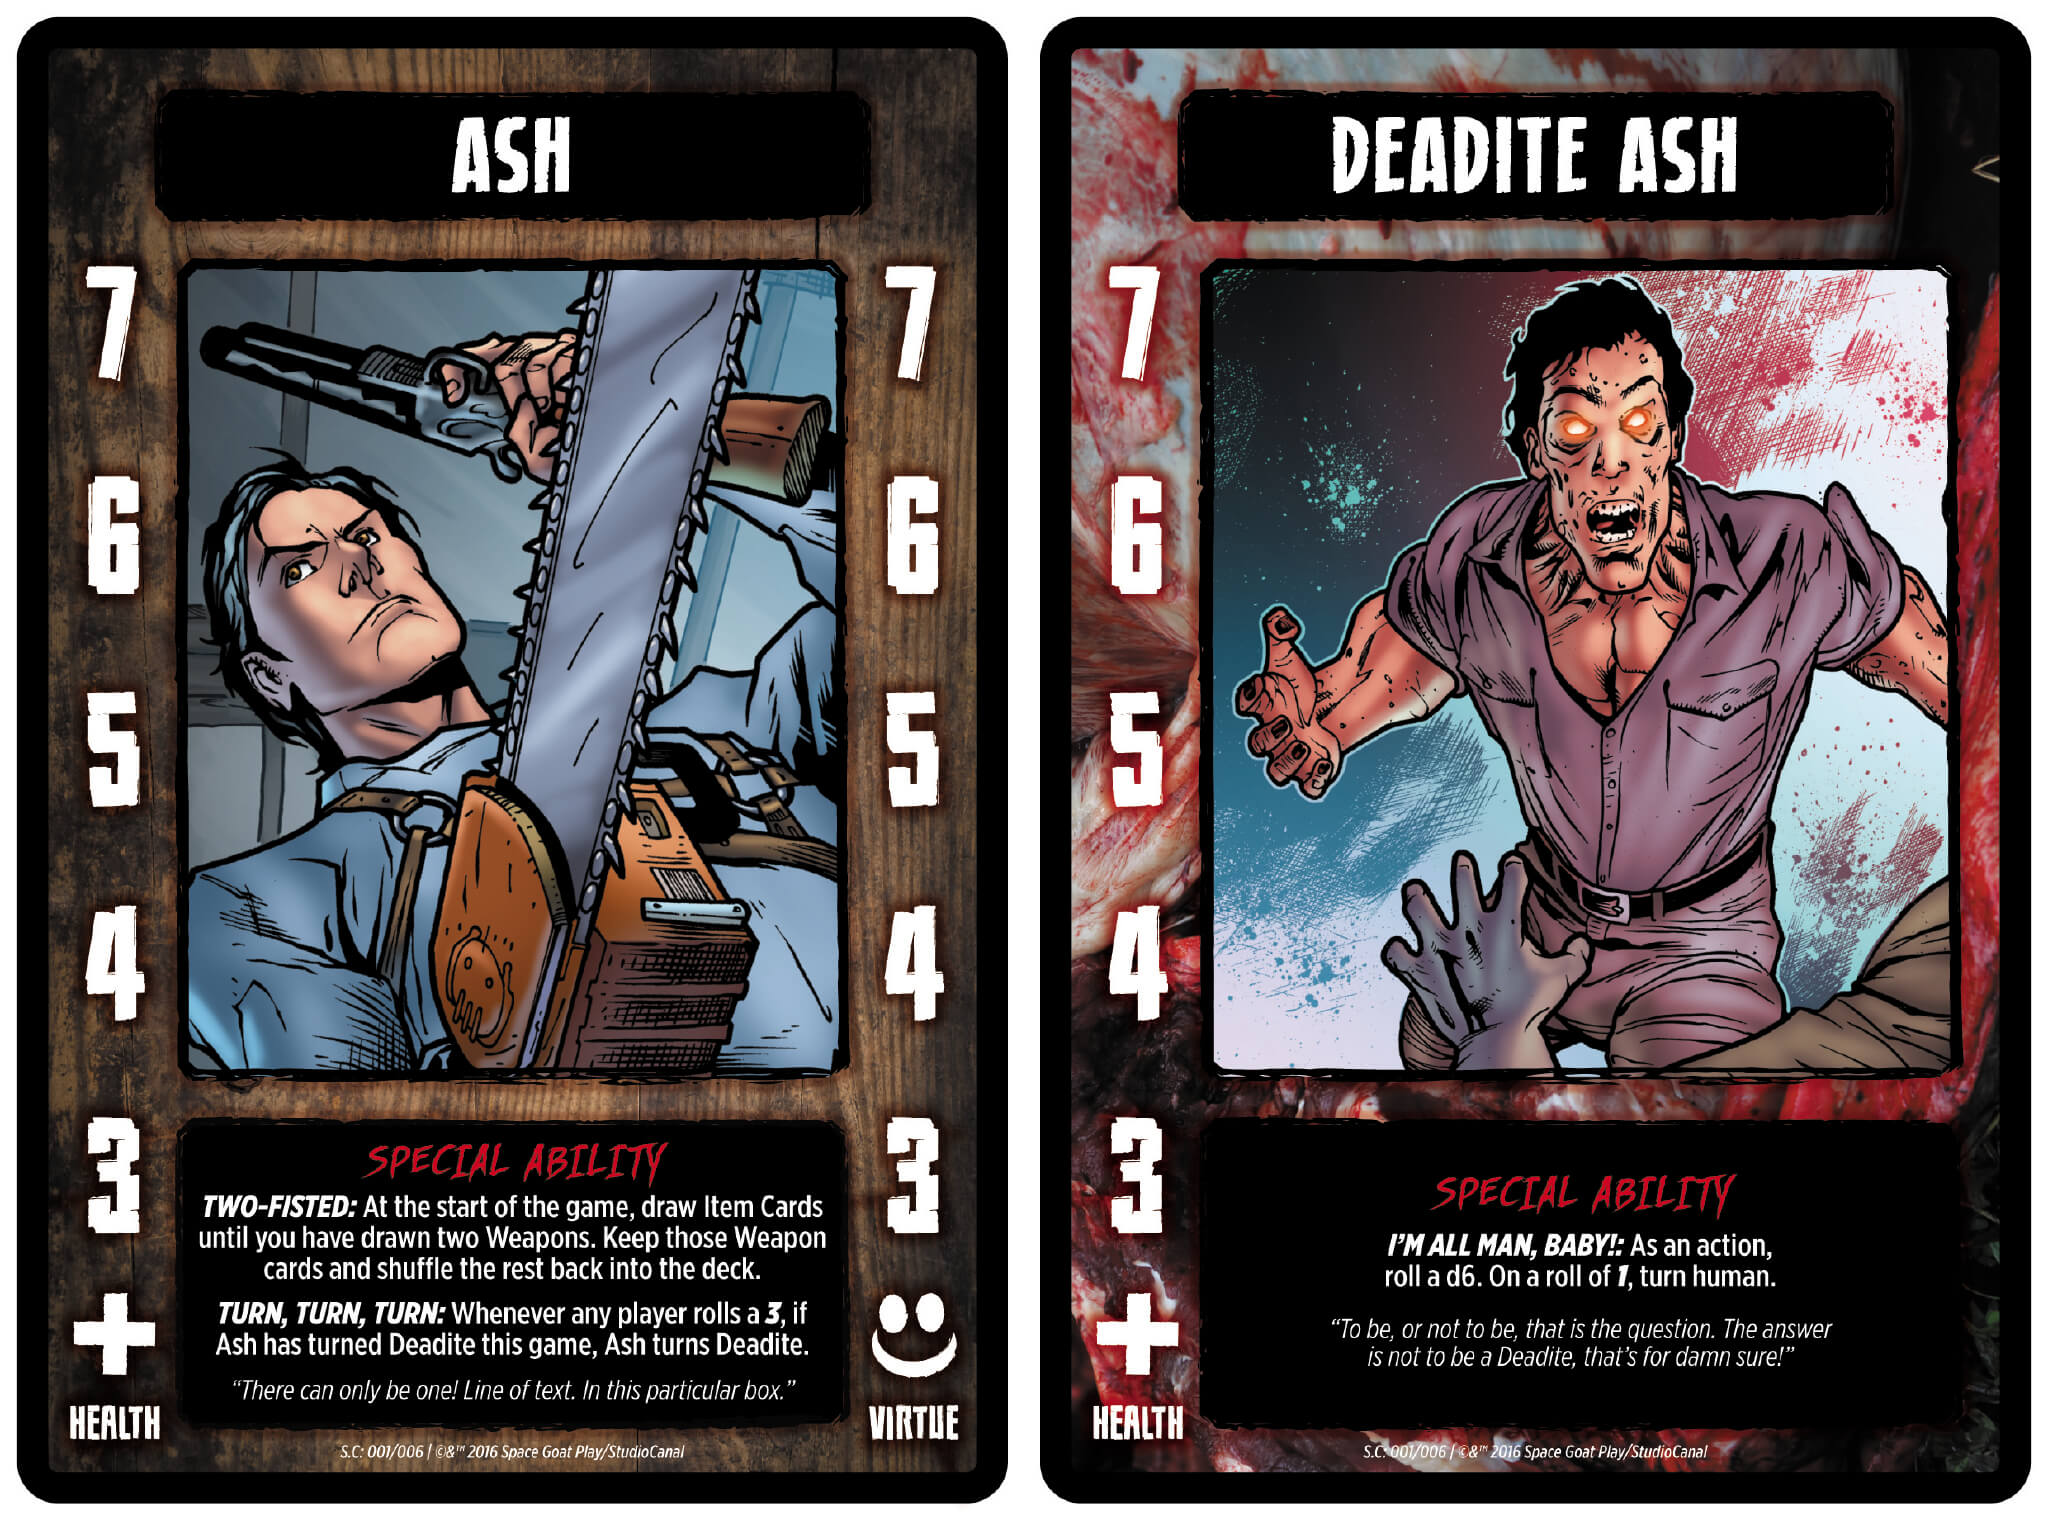 evil dead boardgame 1 - New Images from the Evil Dead 2 Board Game